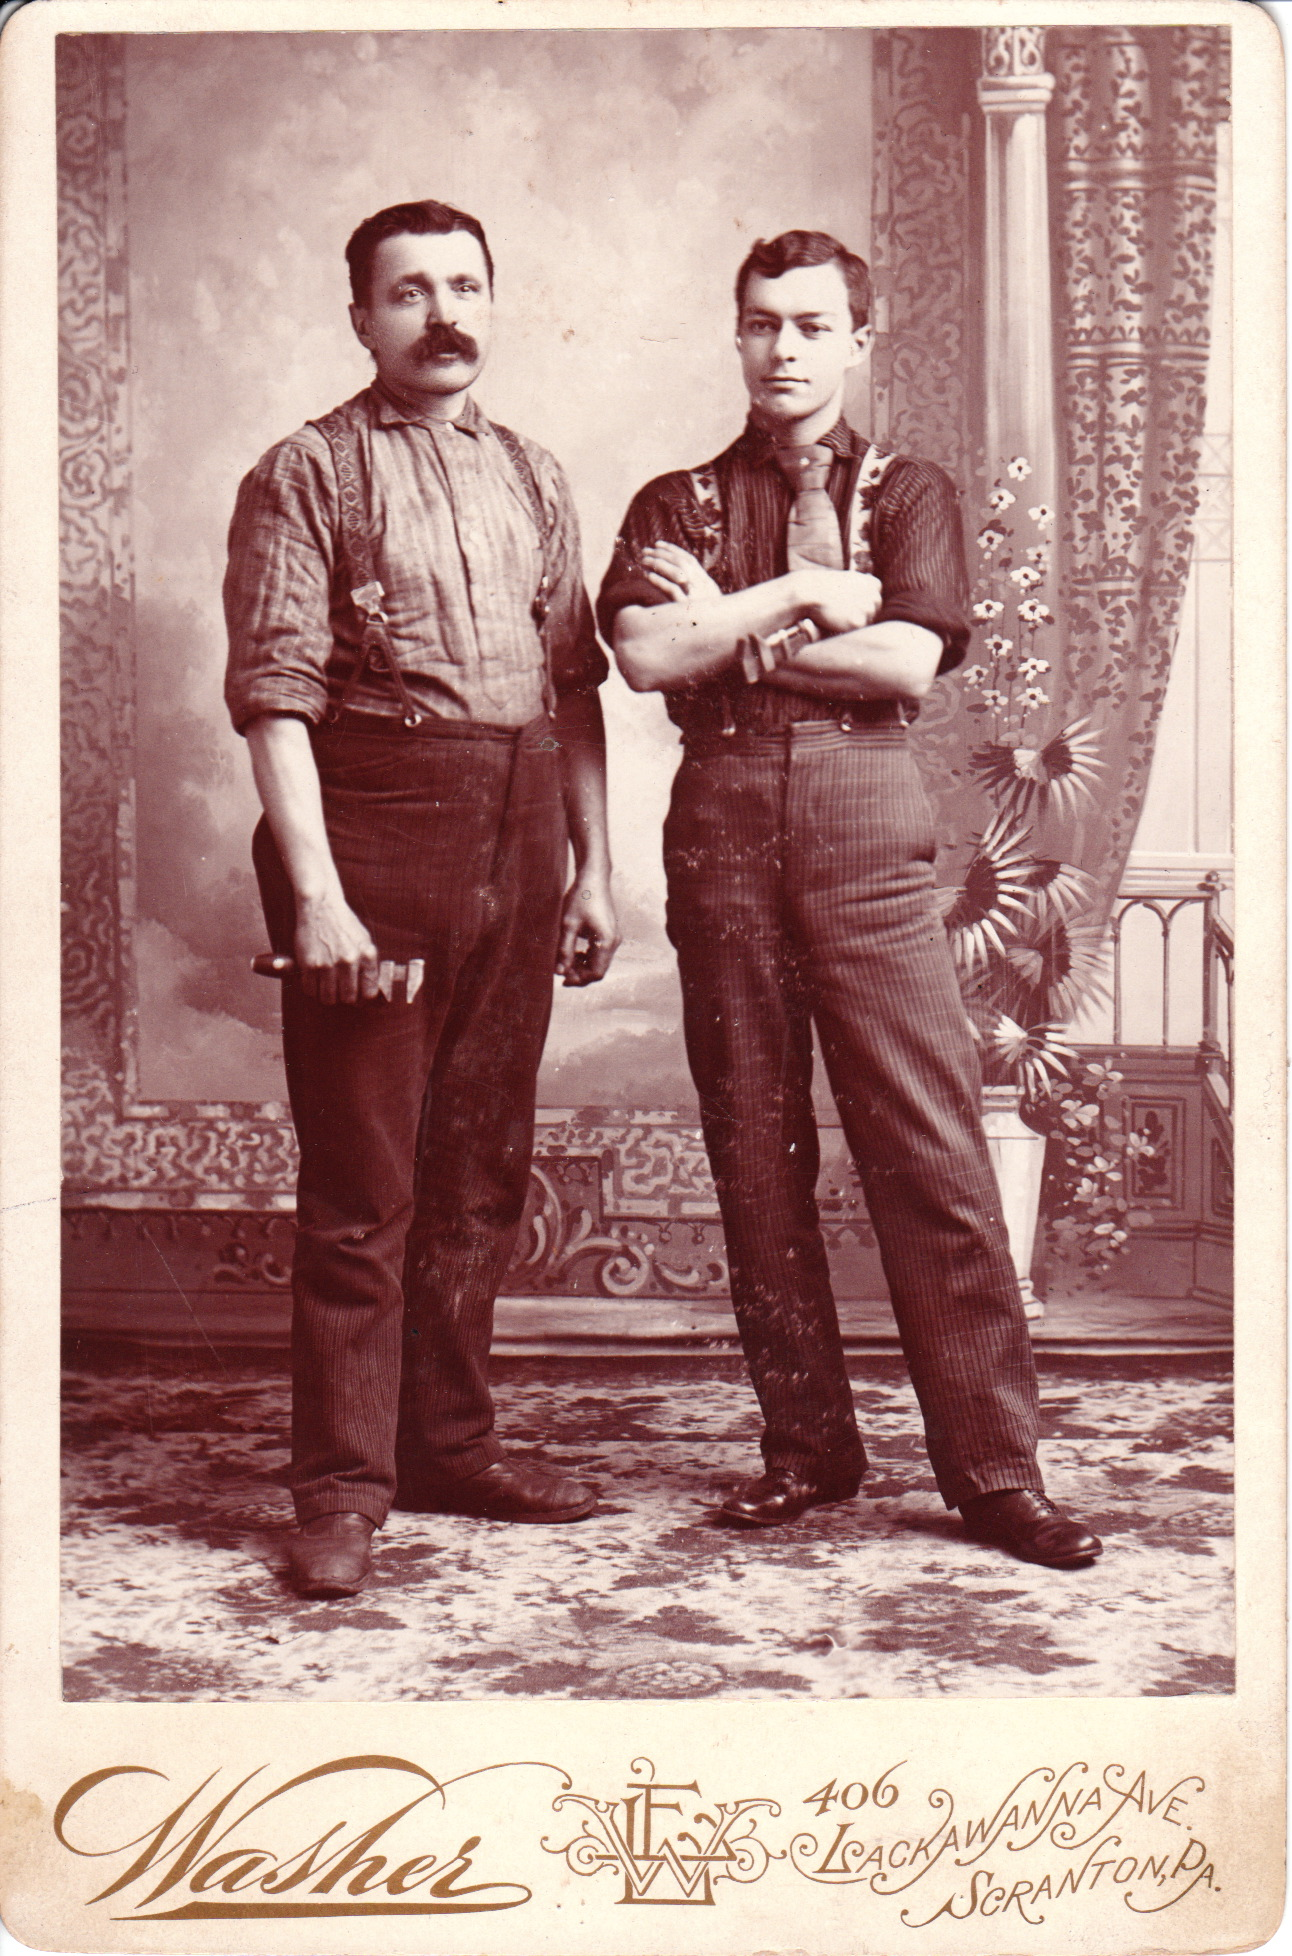 TWO PLUMBERS IN SCRANTON, PENNSYLVANIA | THE CABINET CARD GALLERY